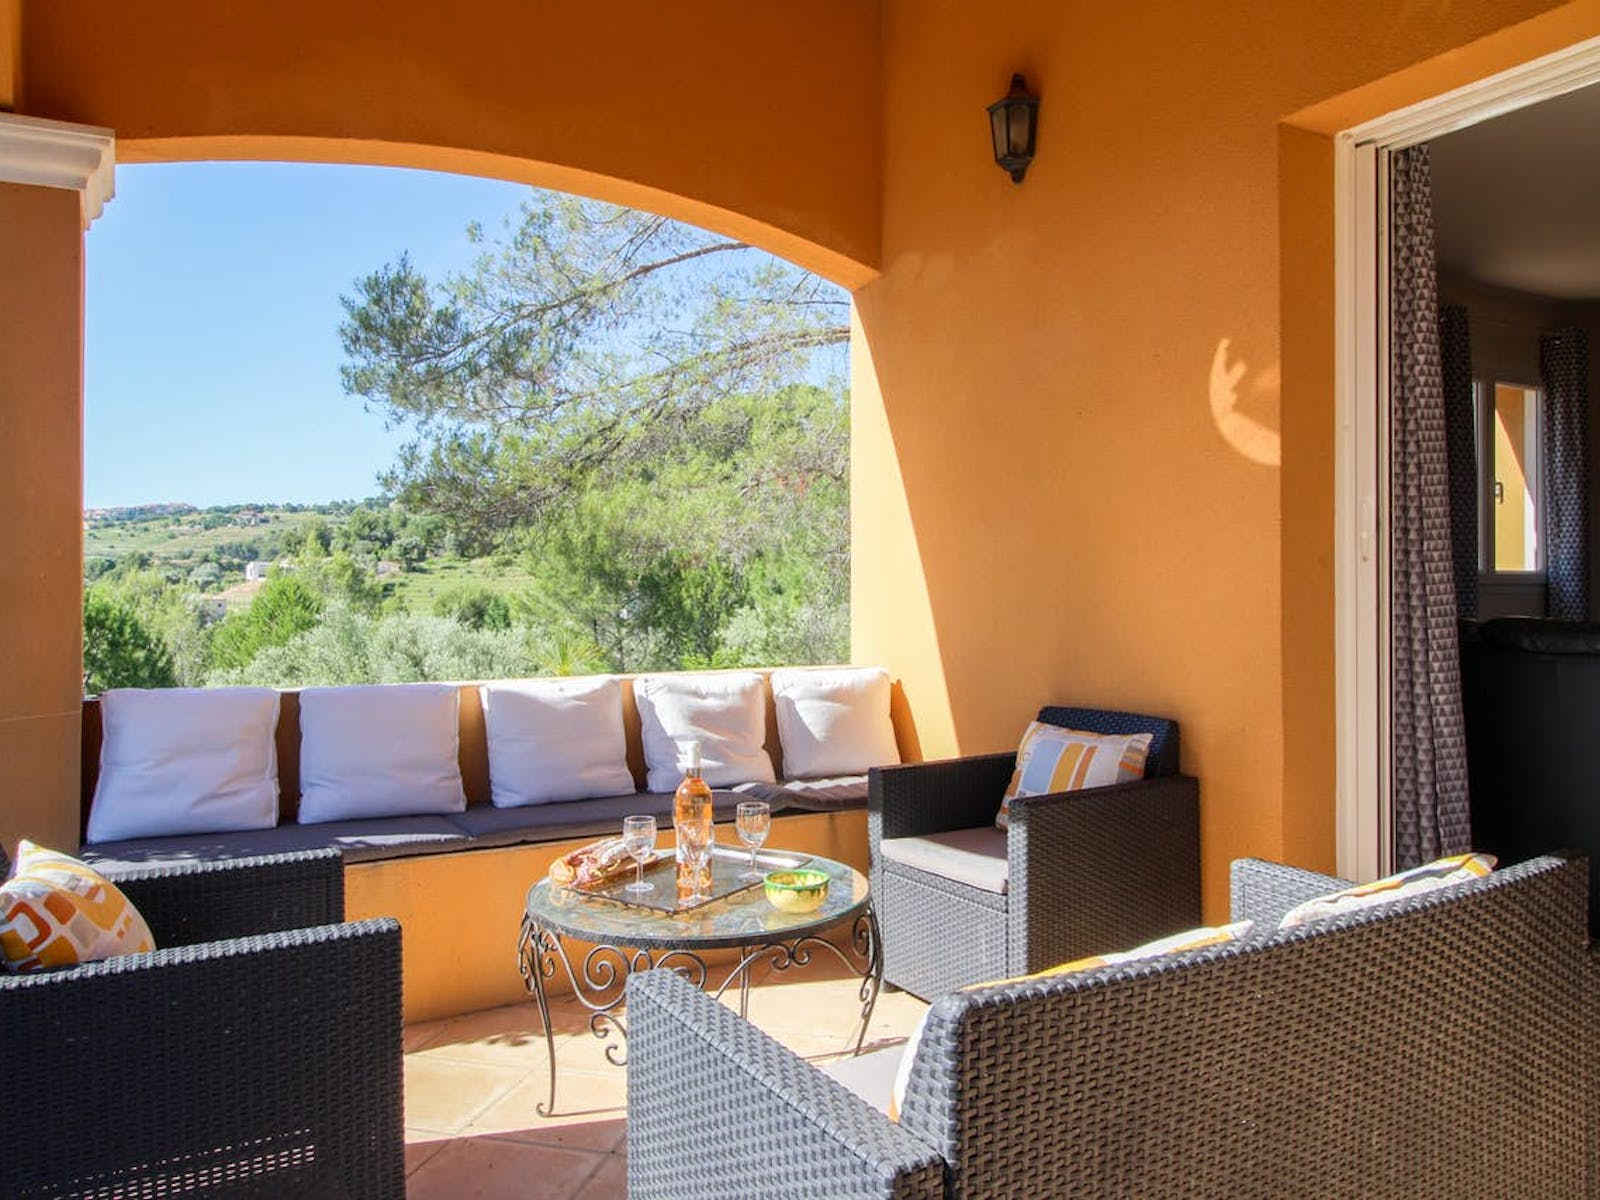 Vacation rental in Le Castellet, French Riviera